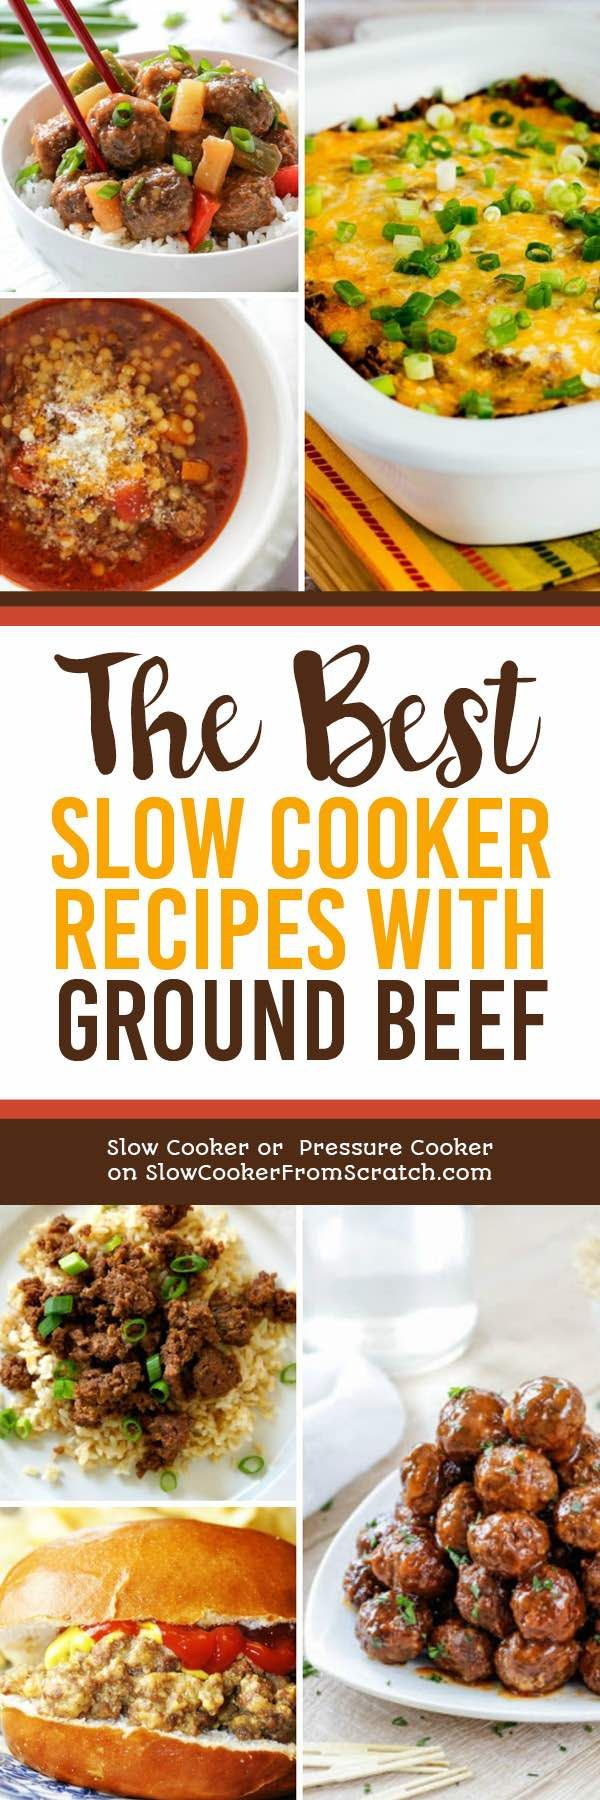 Ground beef is always a mainstay for family dinner, and it's ultra easy to make a ground beef dinner in the slow cooker. To give you ideas, here are The BEST Slow Cooker Recipes with Ground Beef! [found on Slow Cooker or Pressure Cooker at SlowCookerFromScratch.com] #SlowCookerRecipes #GroundBeefRecipes #SlowCookerGroundBeefRecipes